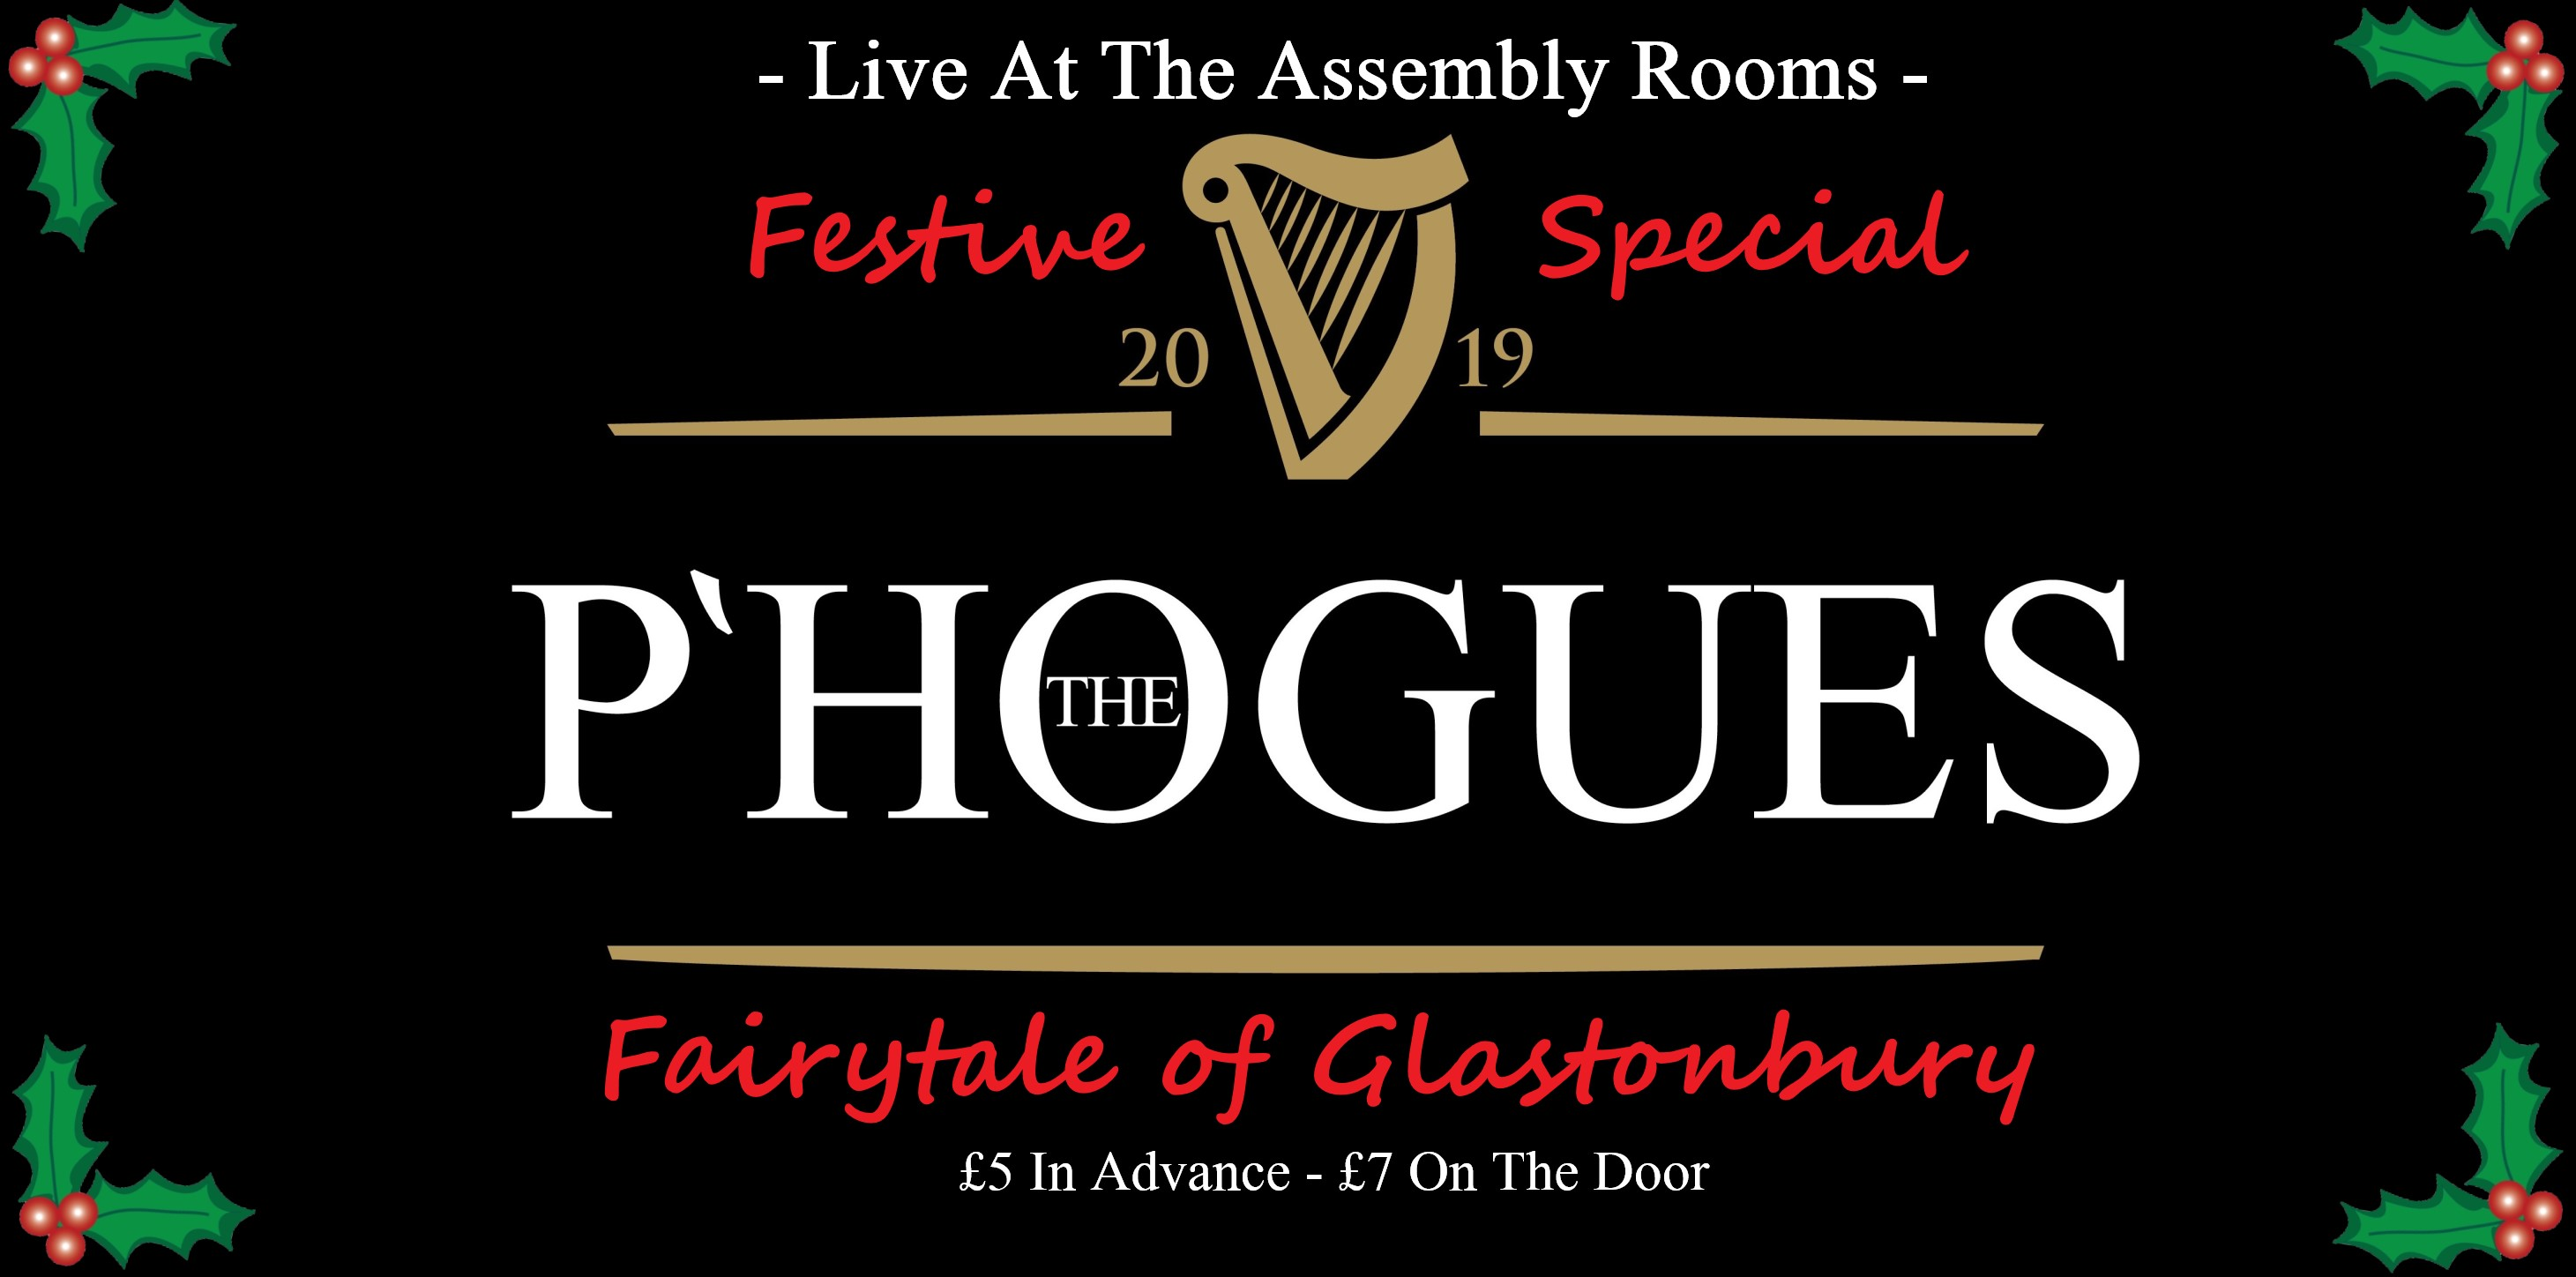 THE P'HOGUES - A Spirited Tribute to The Pogues - Fairytale of Glastonbury - Festive Special